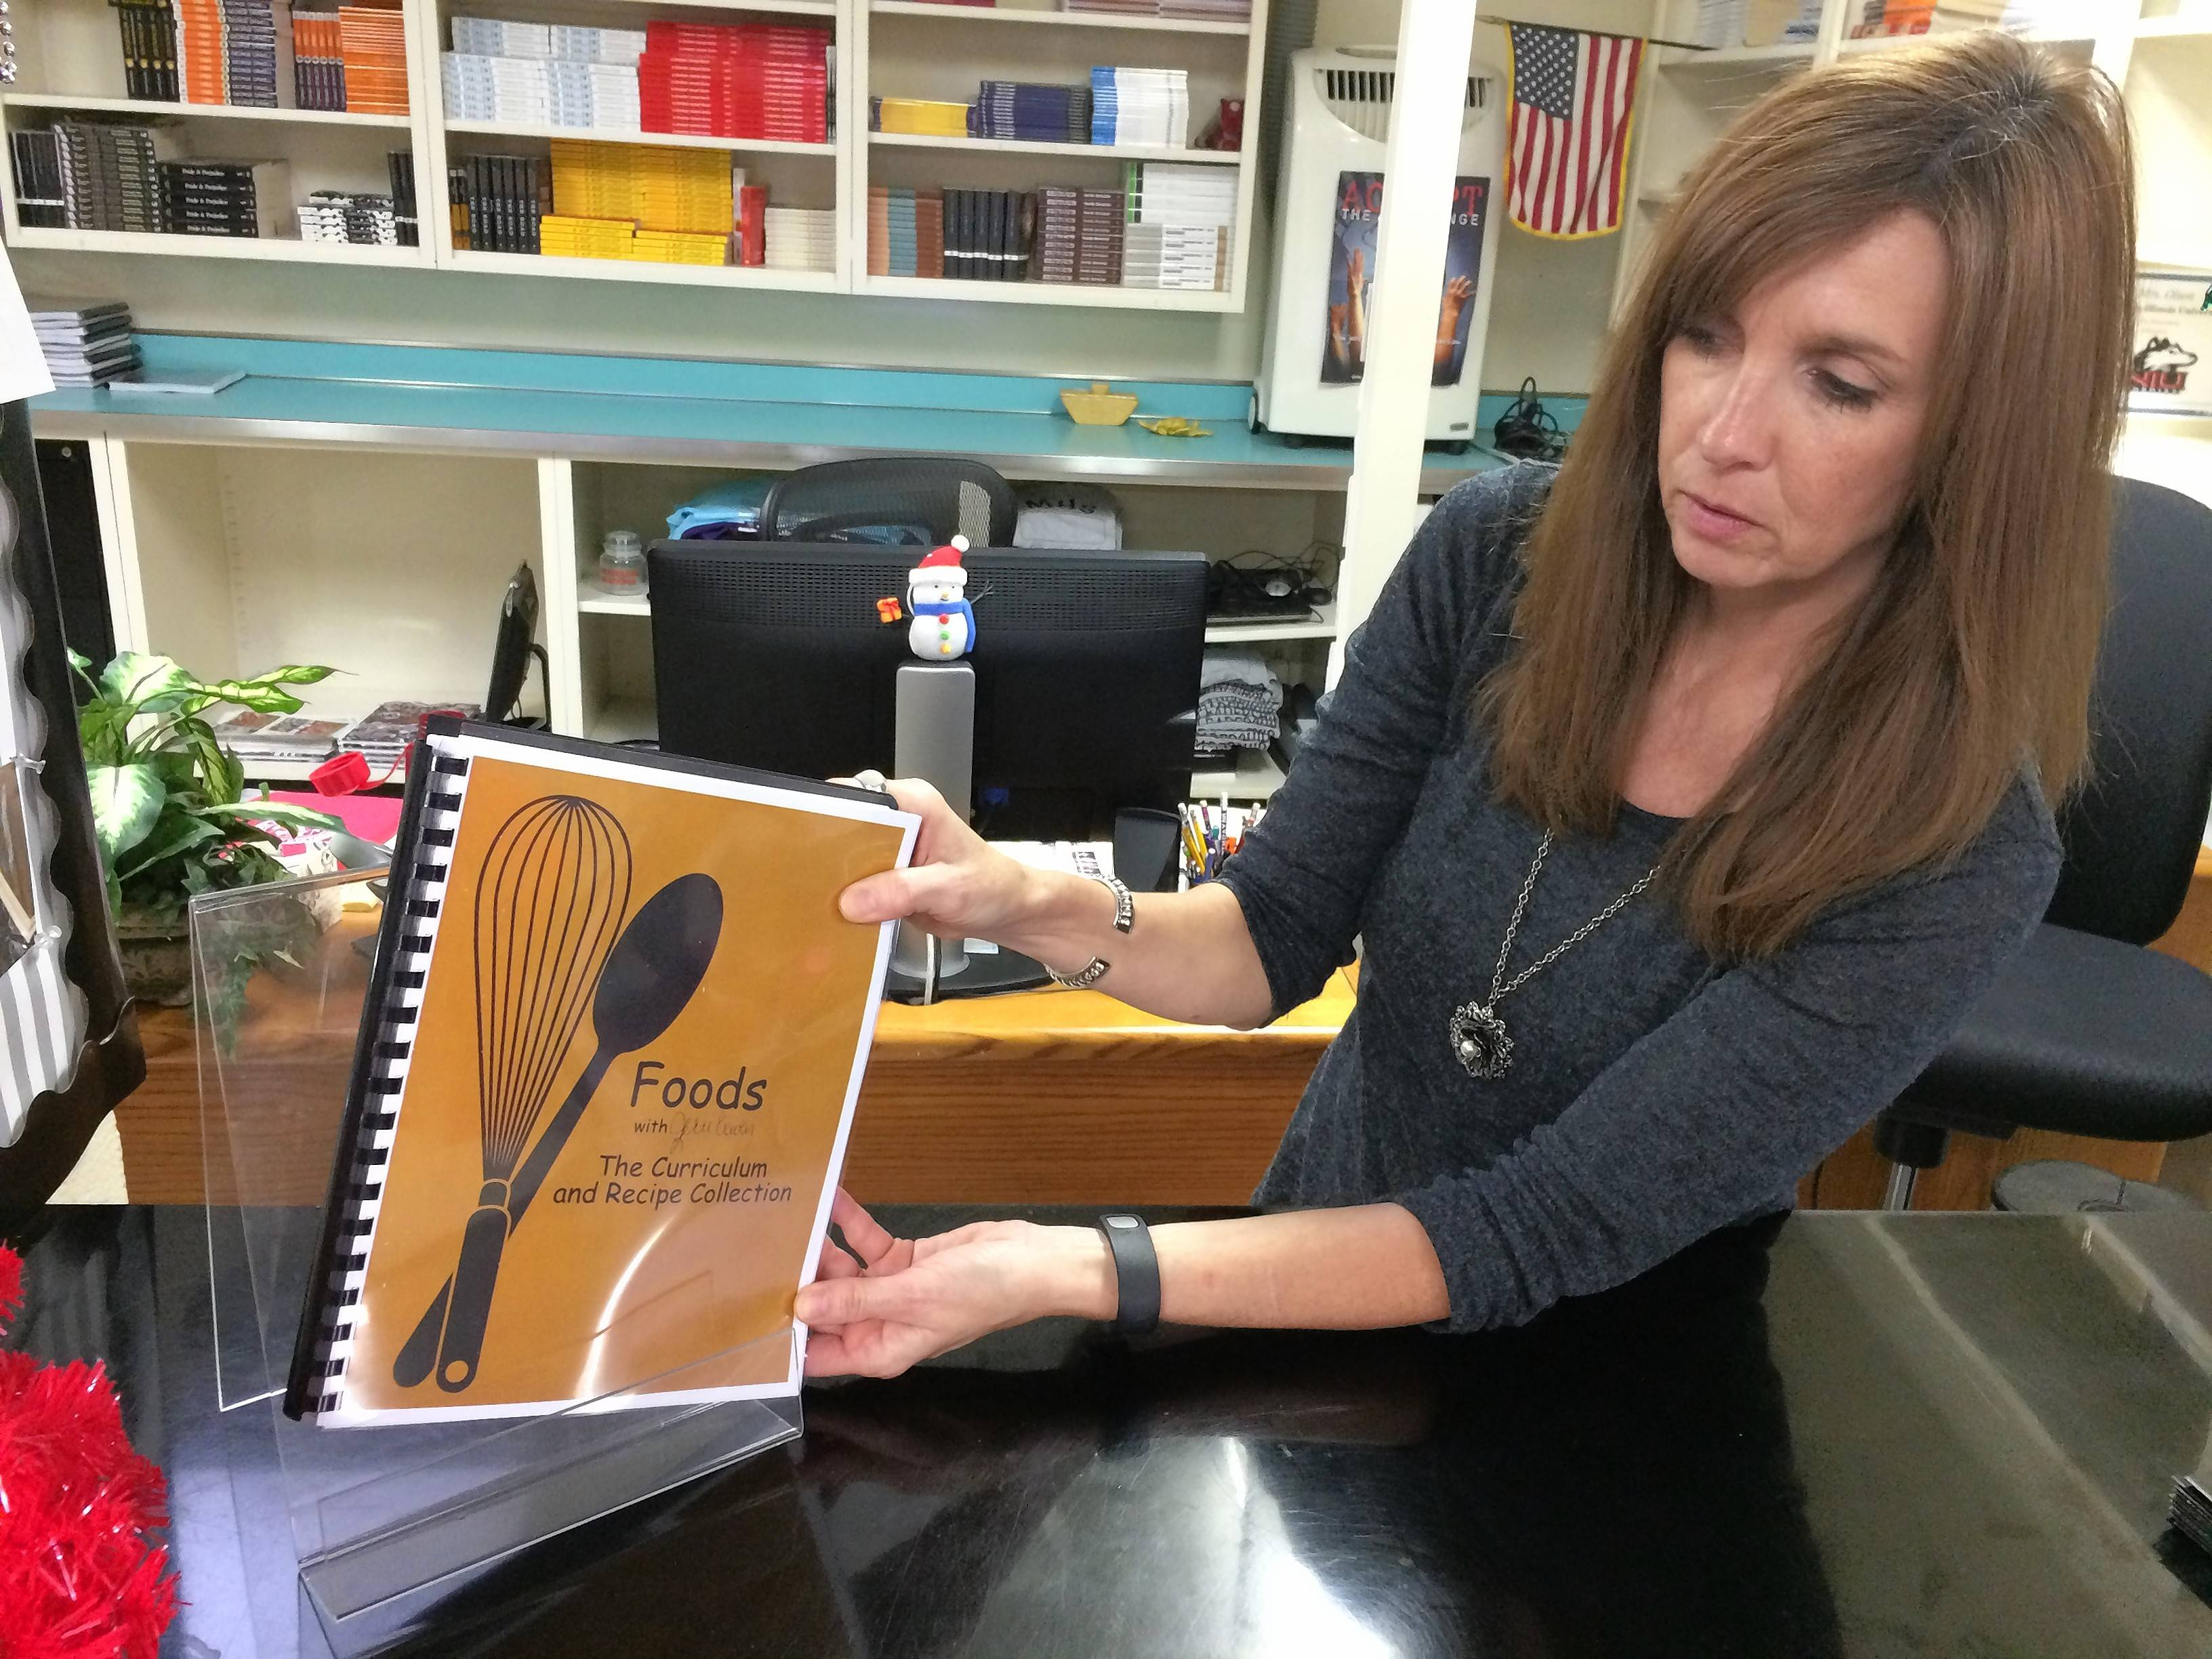 Mundelein High School bookstore clerk KC Olson adjusts a display copy of the cookbook honoring longtime teacher Jerri Craven, who died in September.